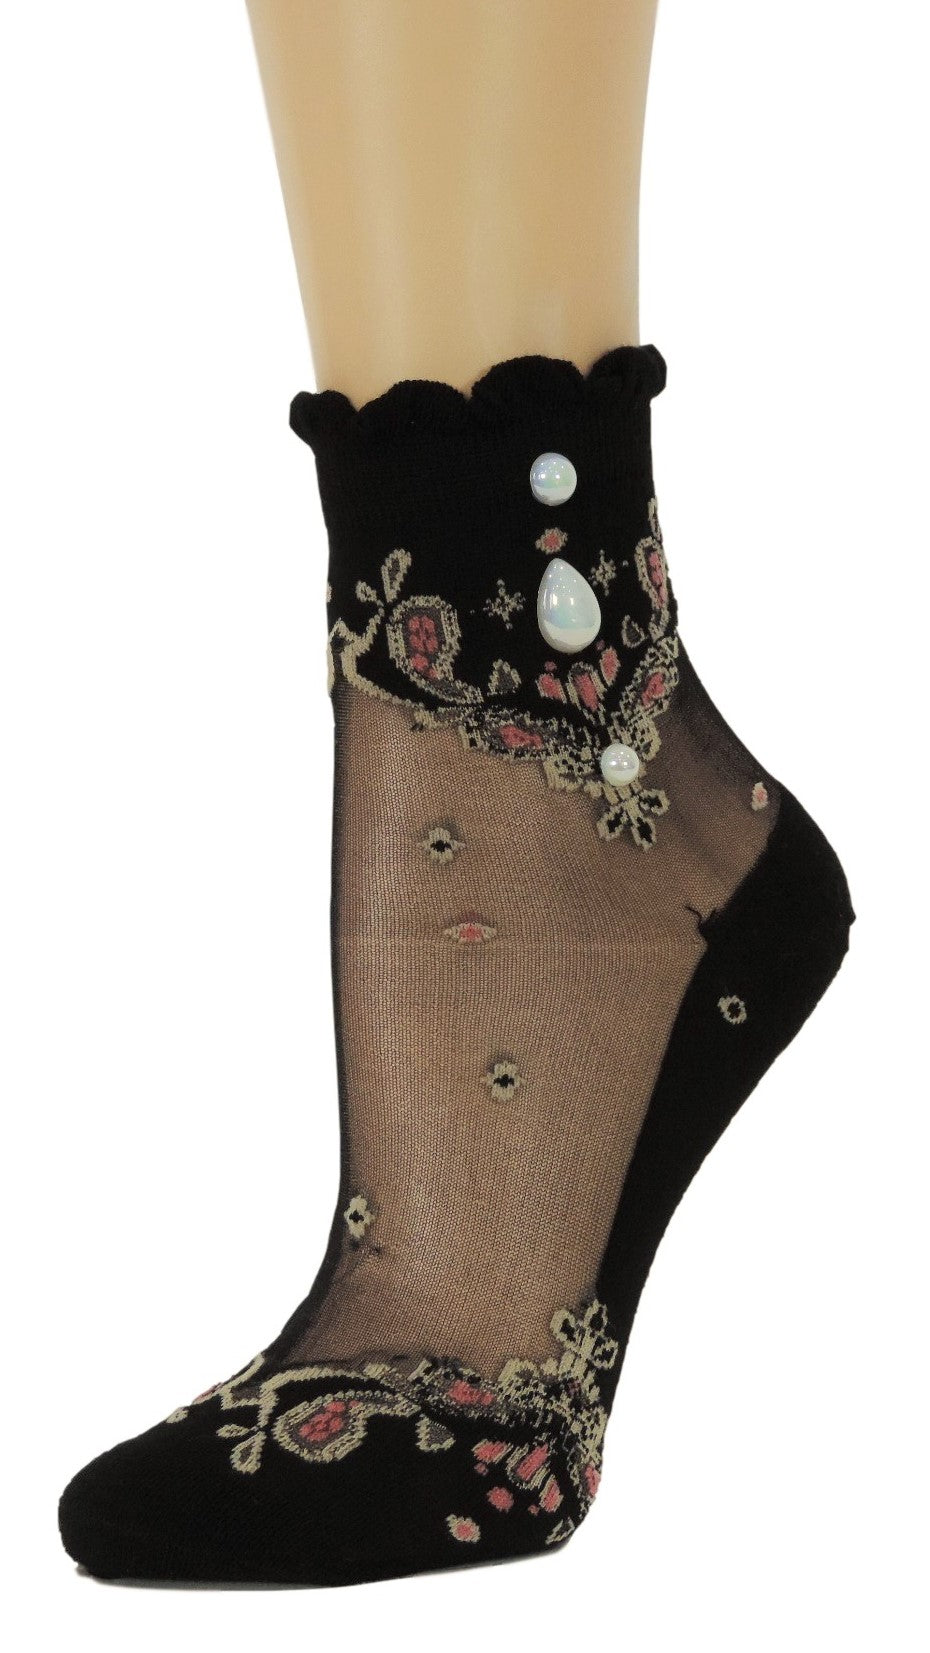 Royal Chandelier Custom Sheer Socks with beads